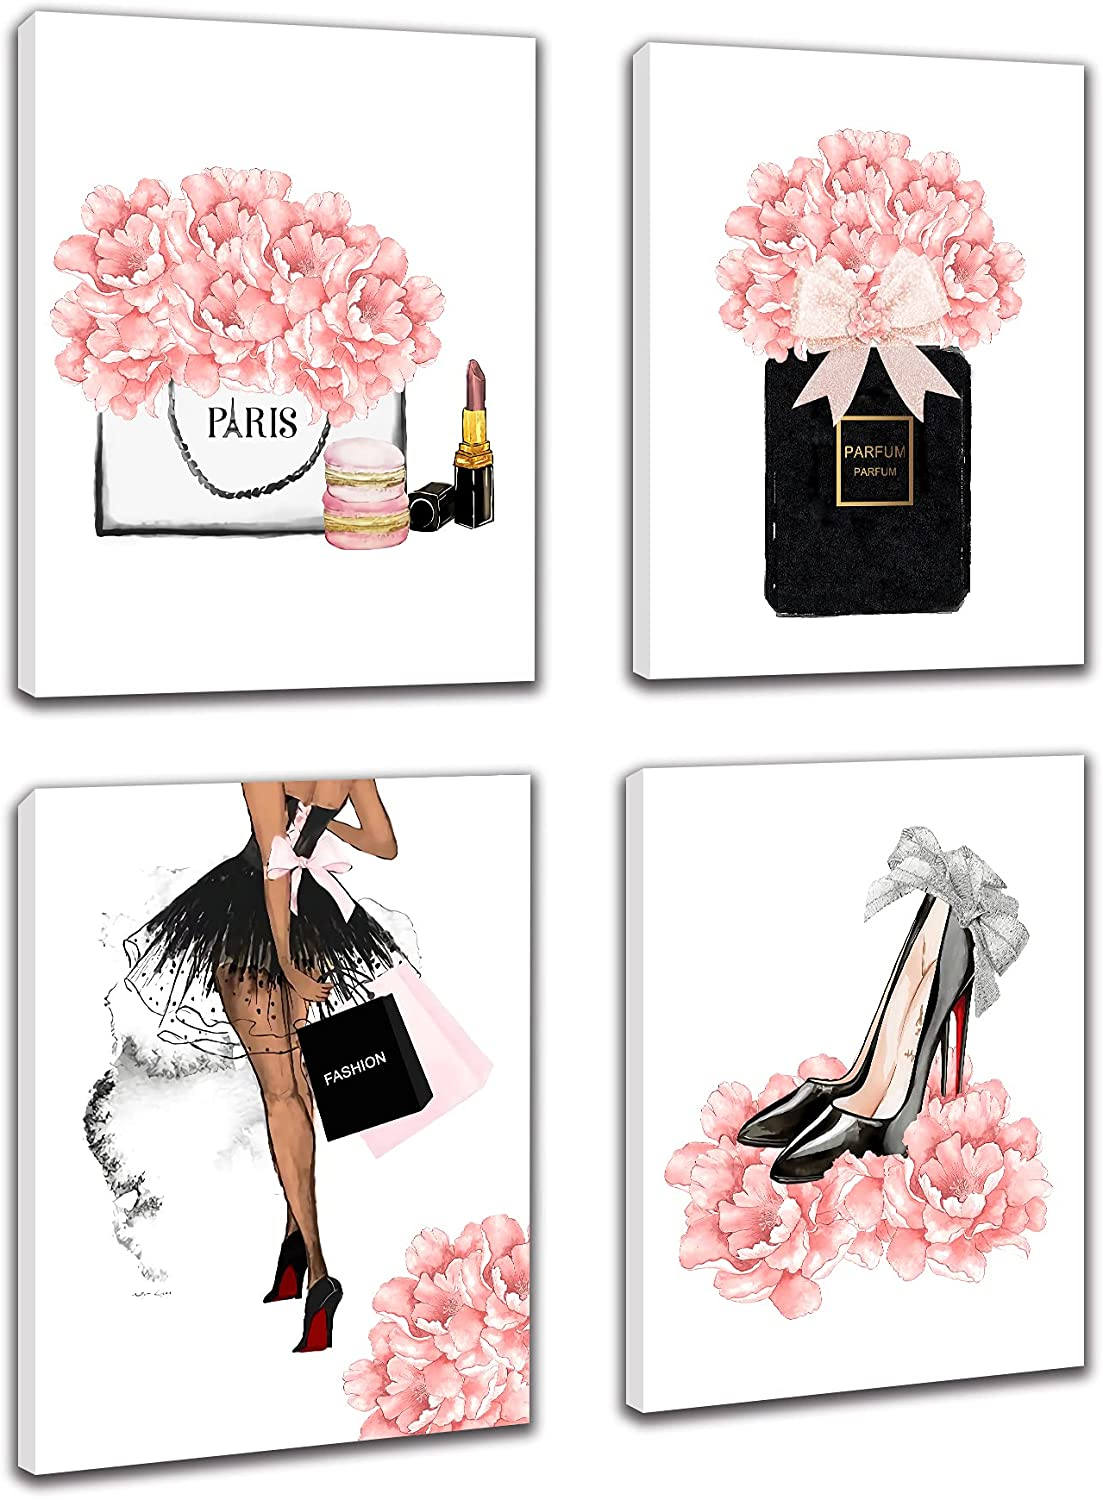 Makeup Room Framed Canvas Wall Art, Fashion Women Picture Arts, Perfume Handbags High Heels Lipstick Wall Paintings, Pink Gift for Girls Room Boudoir Decor Ready to Hang Set of 4, 8